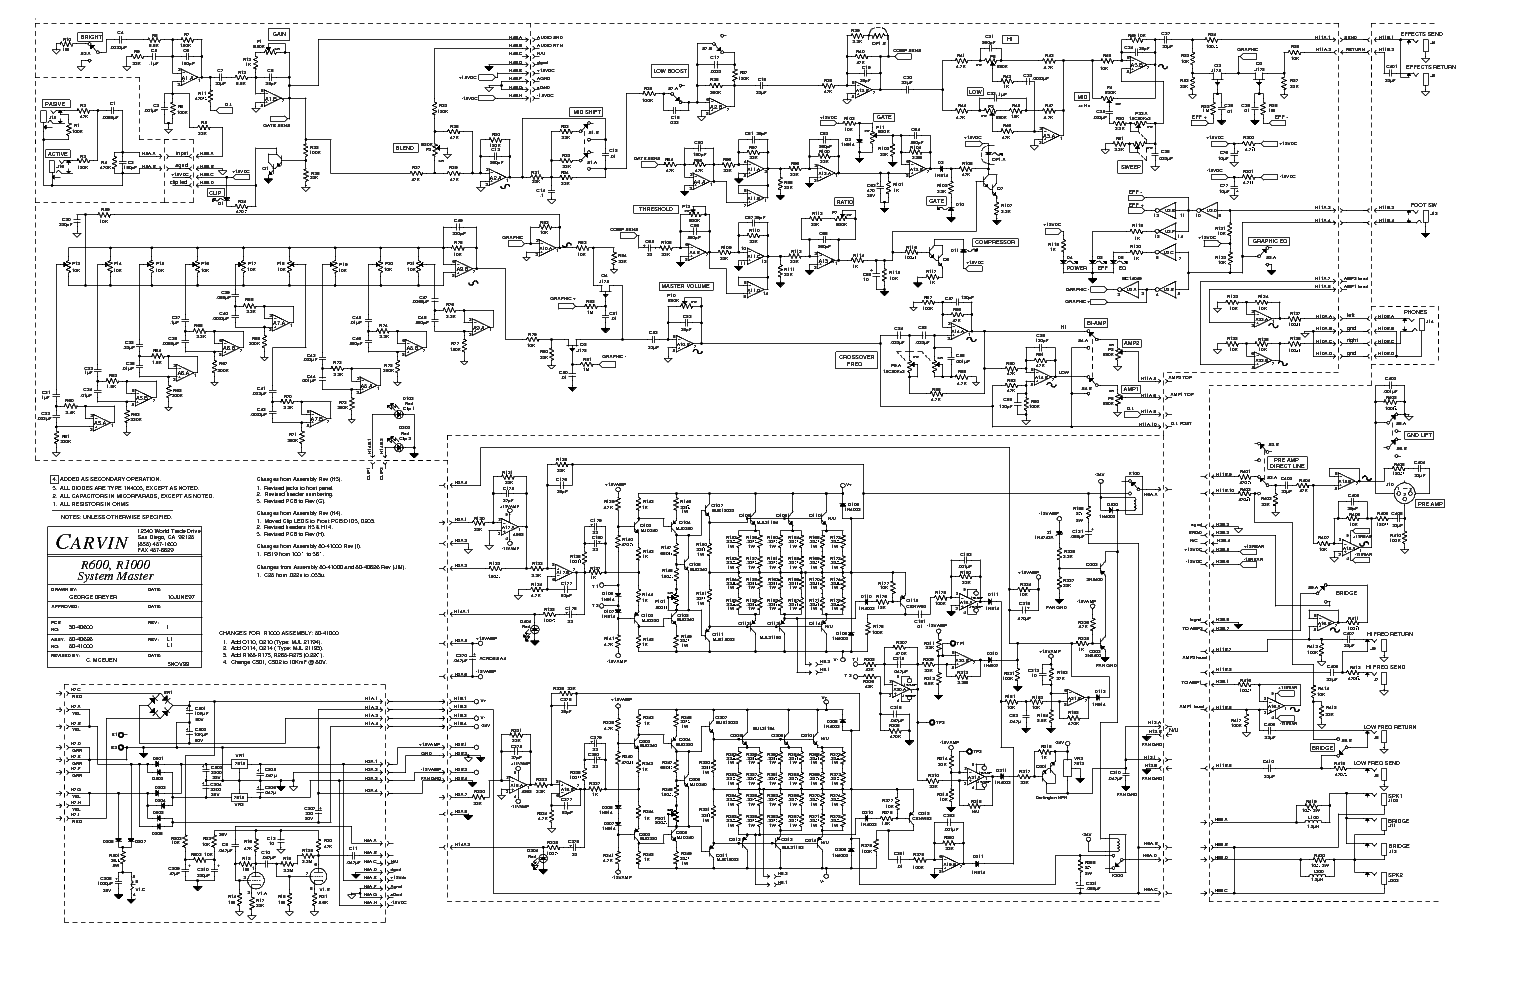 Carvin Wiring Diagrams Trusted Hss Guitar R 1000 Schematic House Diagram Symbols U2022 Strat